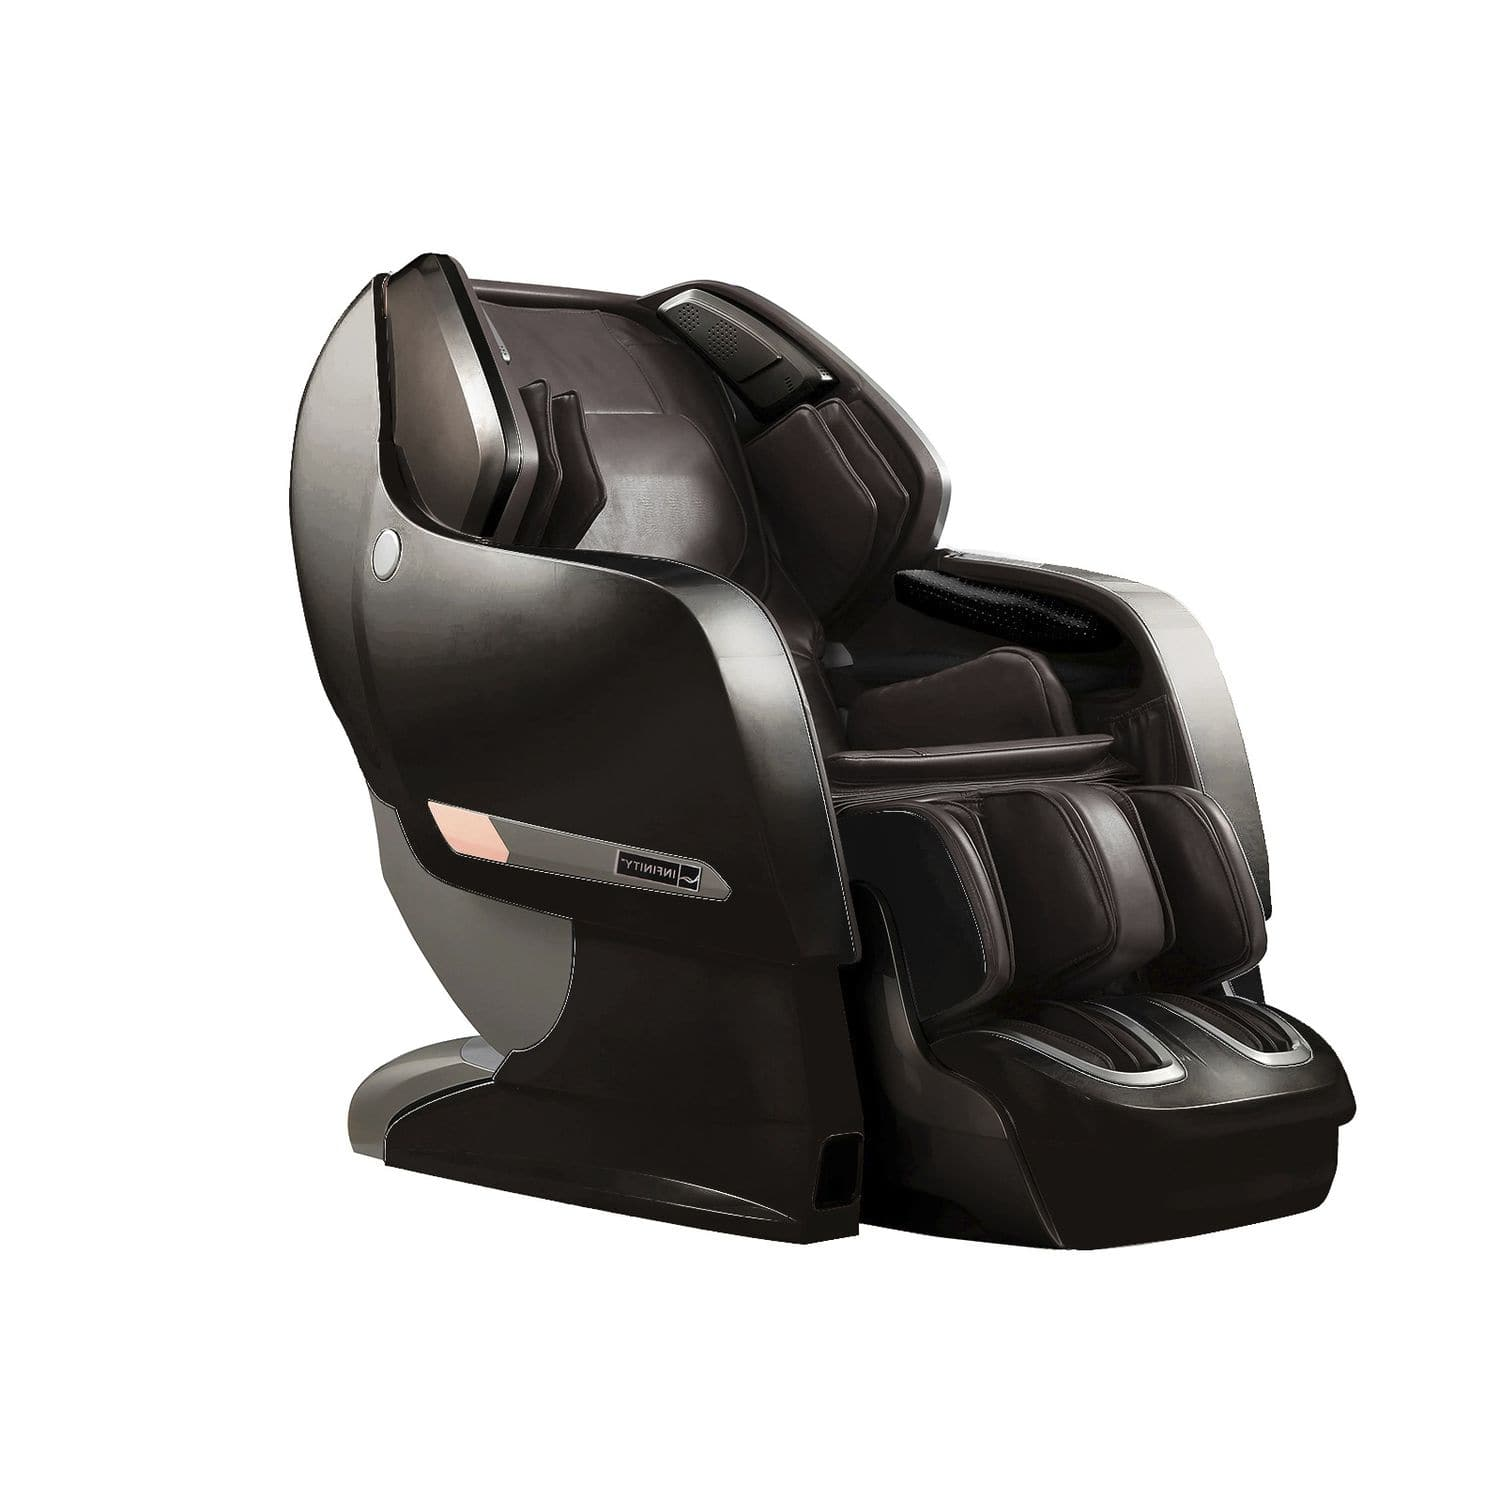 Airport massage chair Infinity™ Imperial Infinite Therapeutics